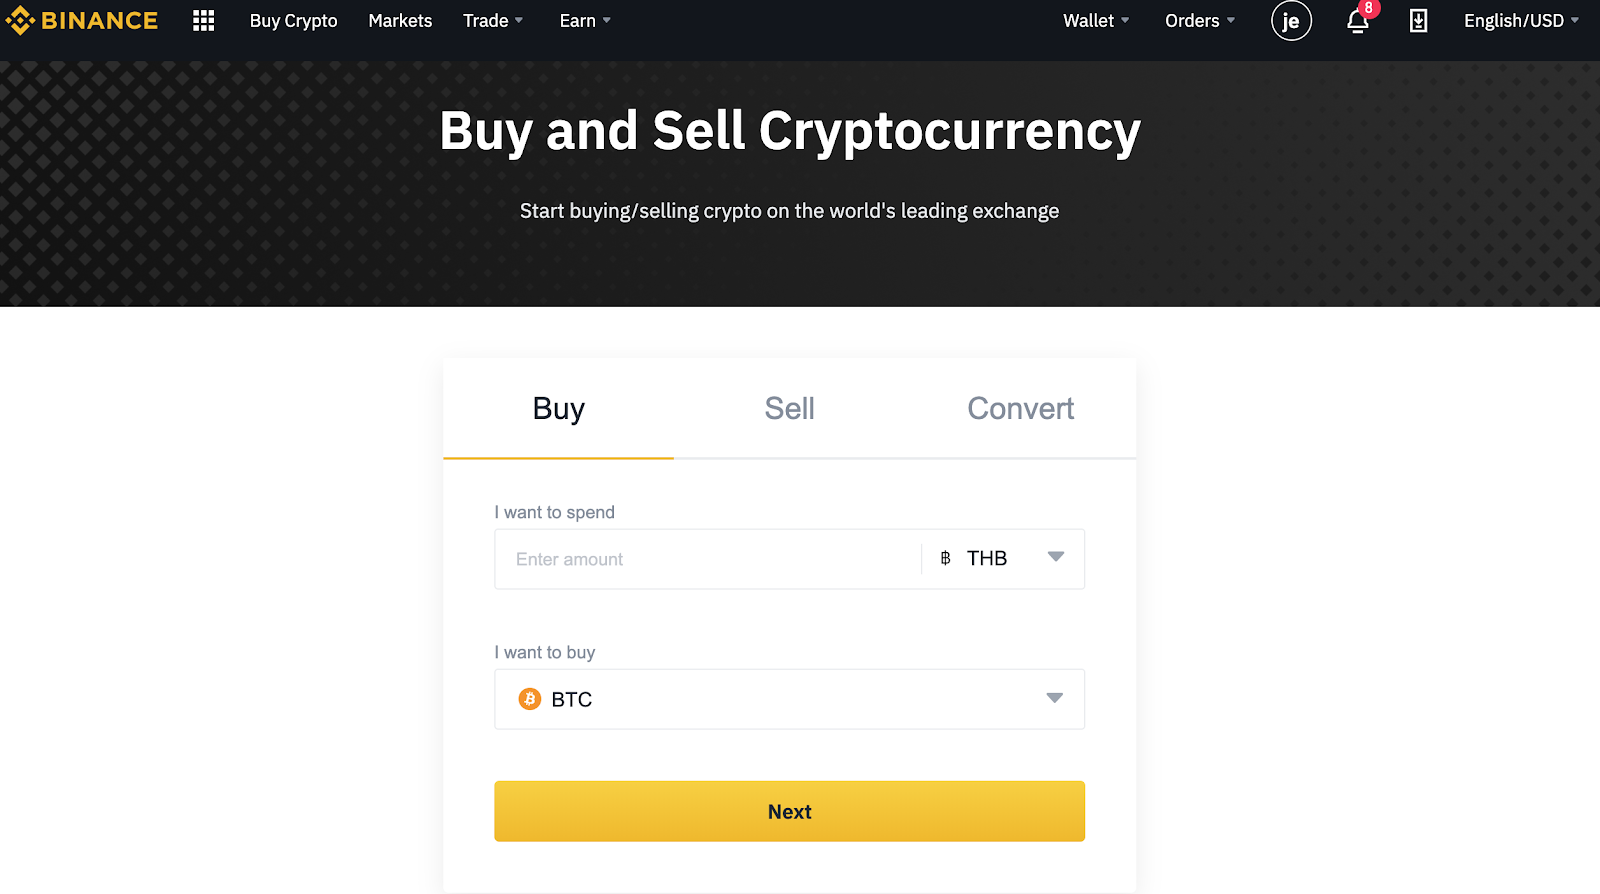 Can i buy bitcoin on binance with a credit card